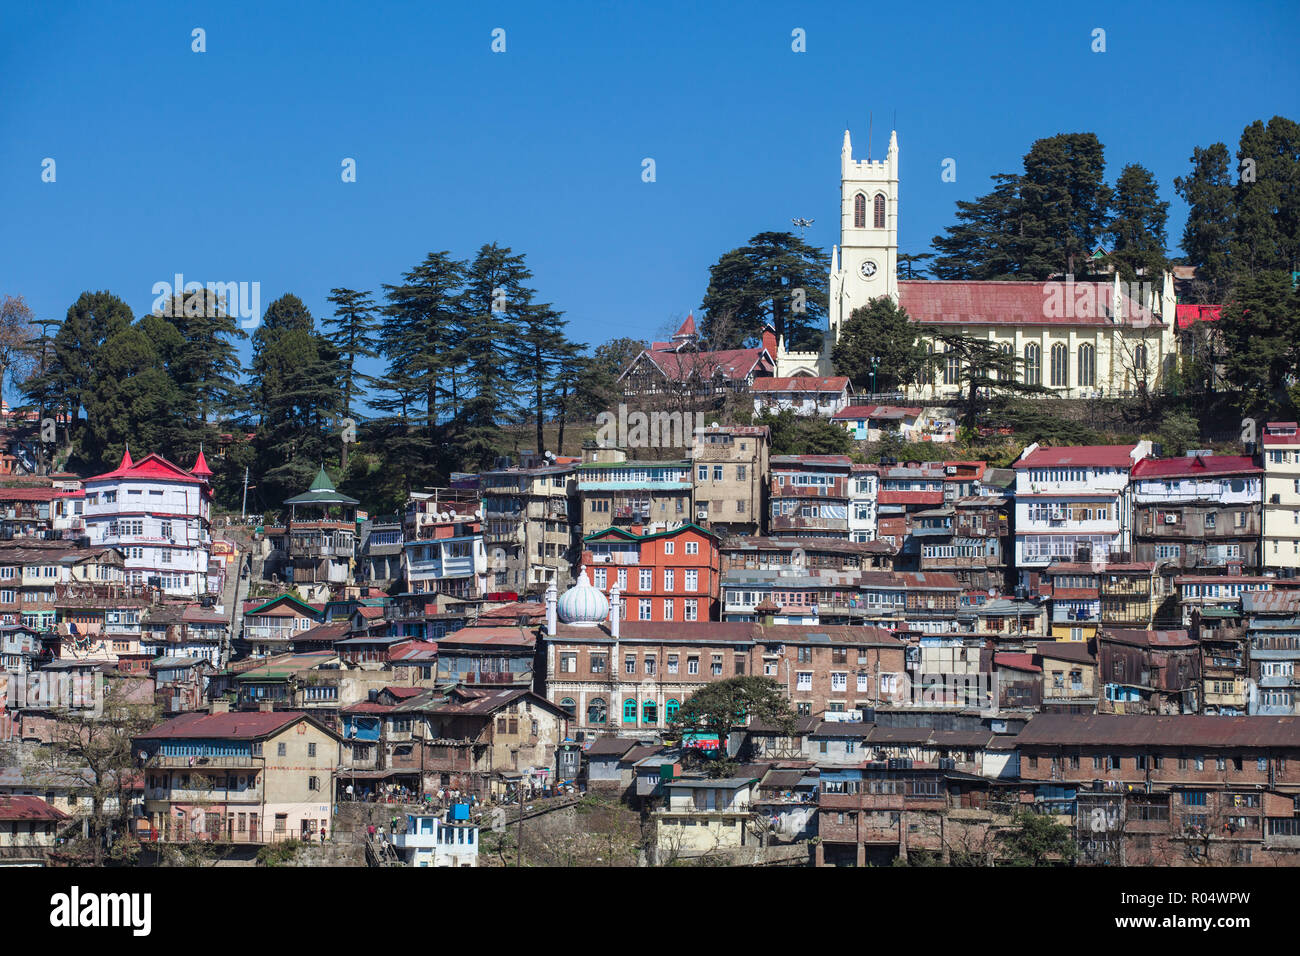 View over city looking towards Christ Church, Shimla (Simla), Himachal Pradesh, India, Asia - Stock Image